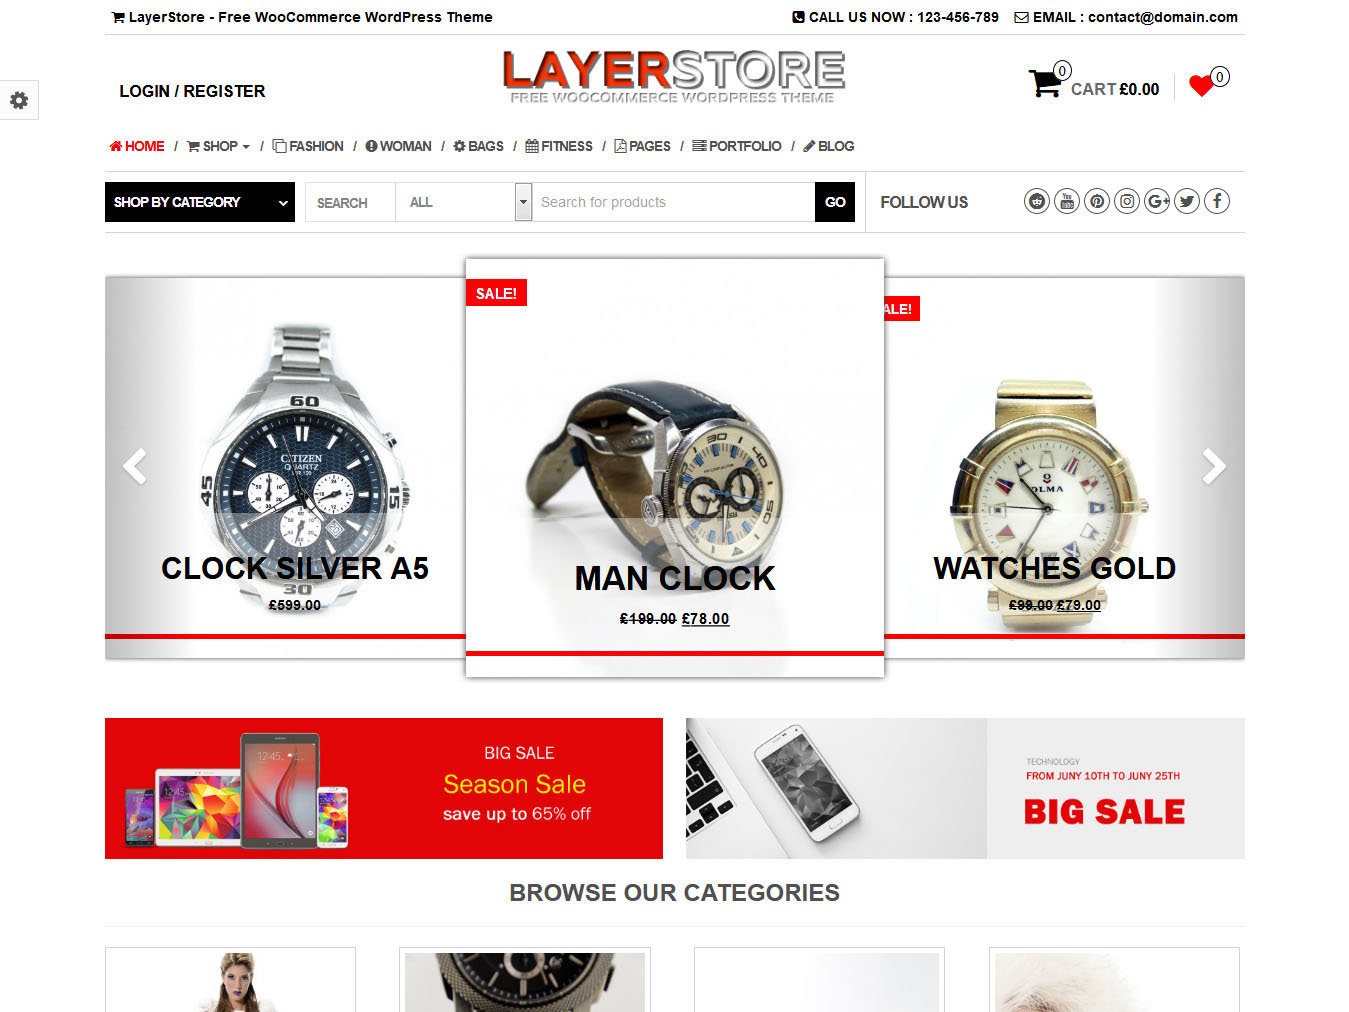 LayerStore - Best Free WordPress WooCommerce Theme